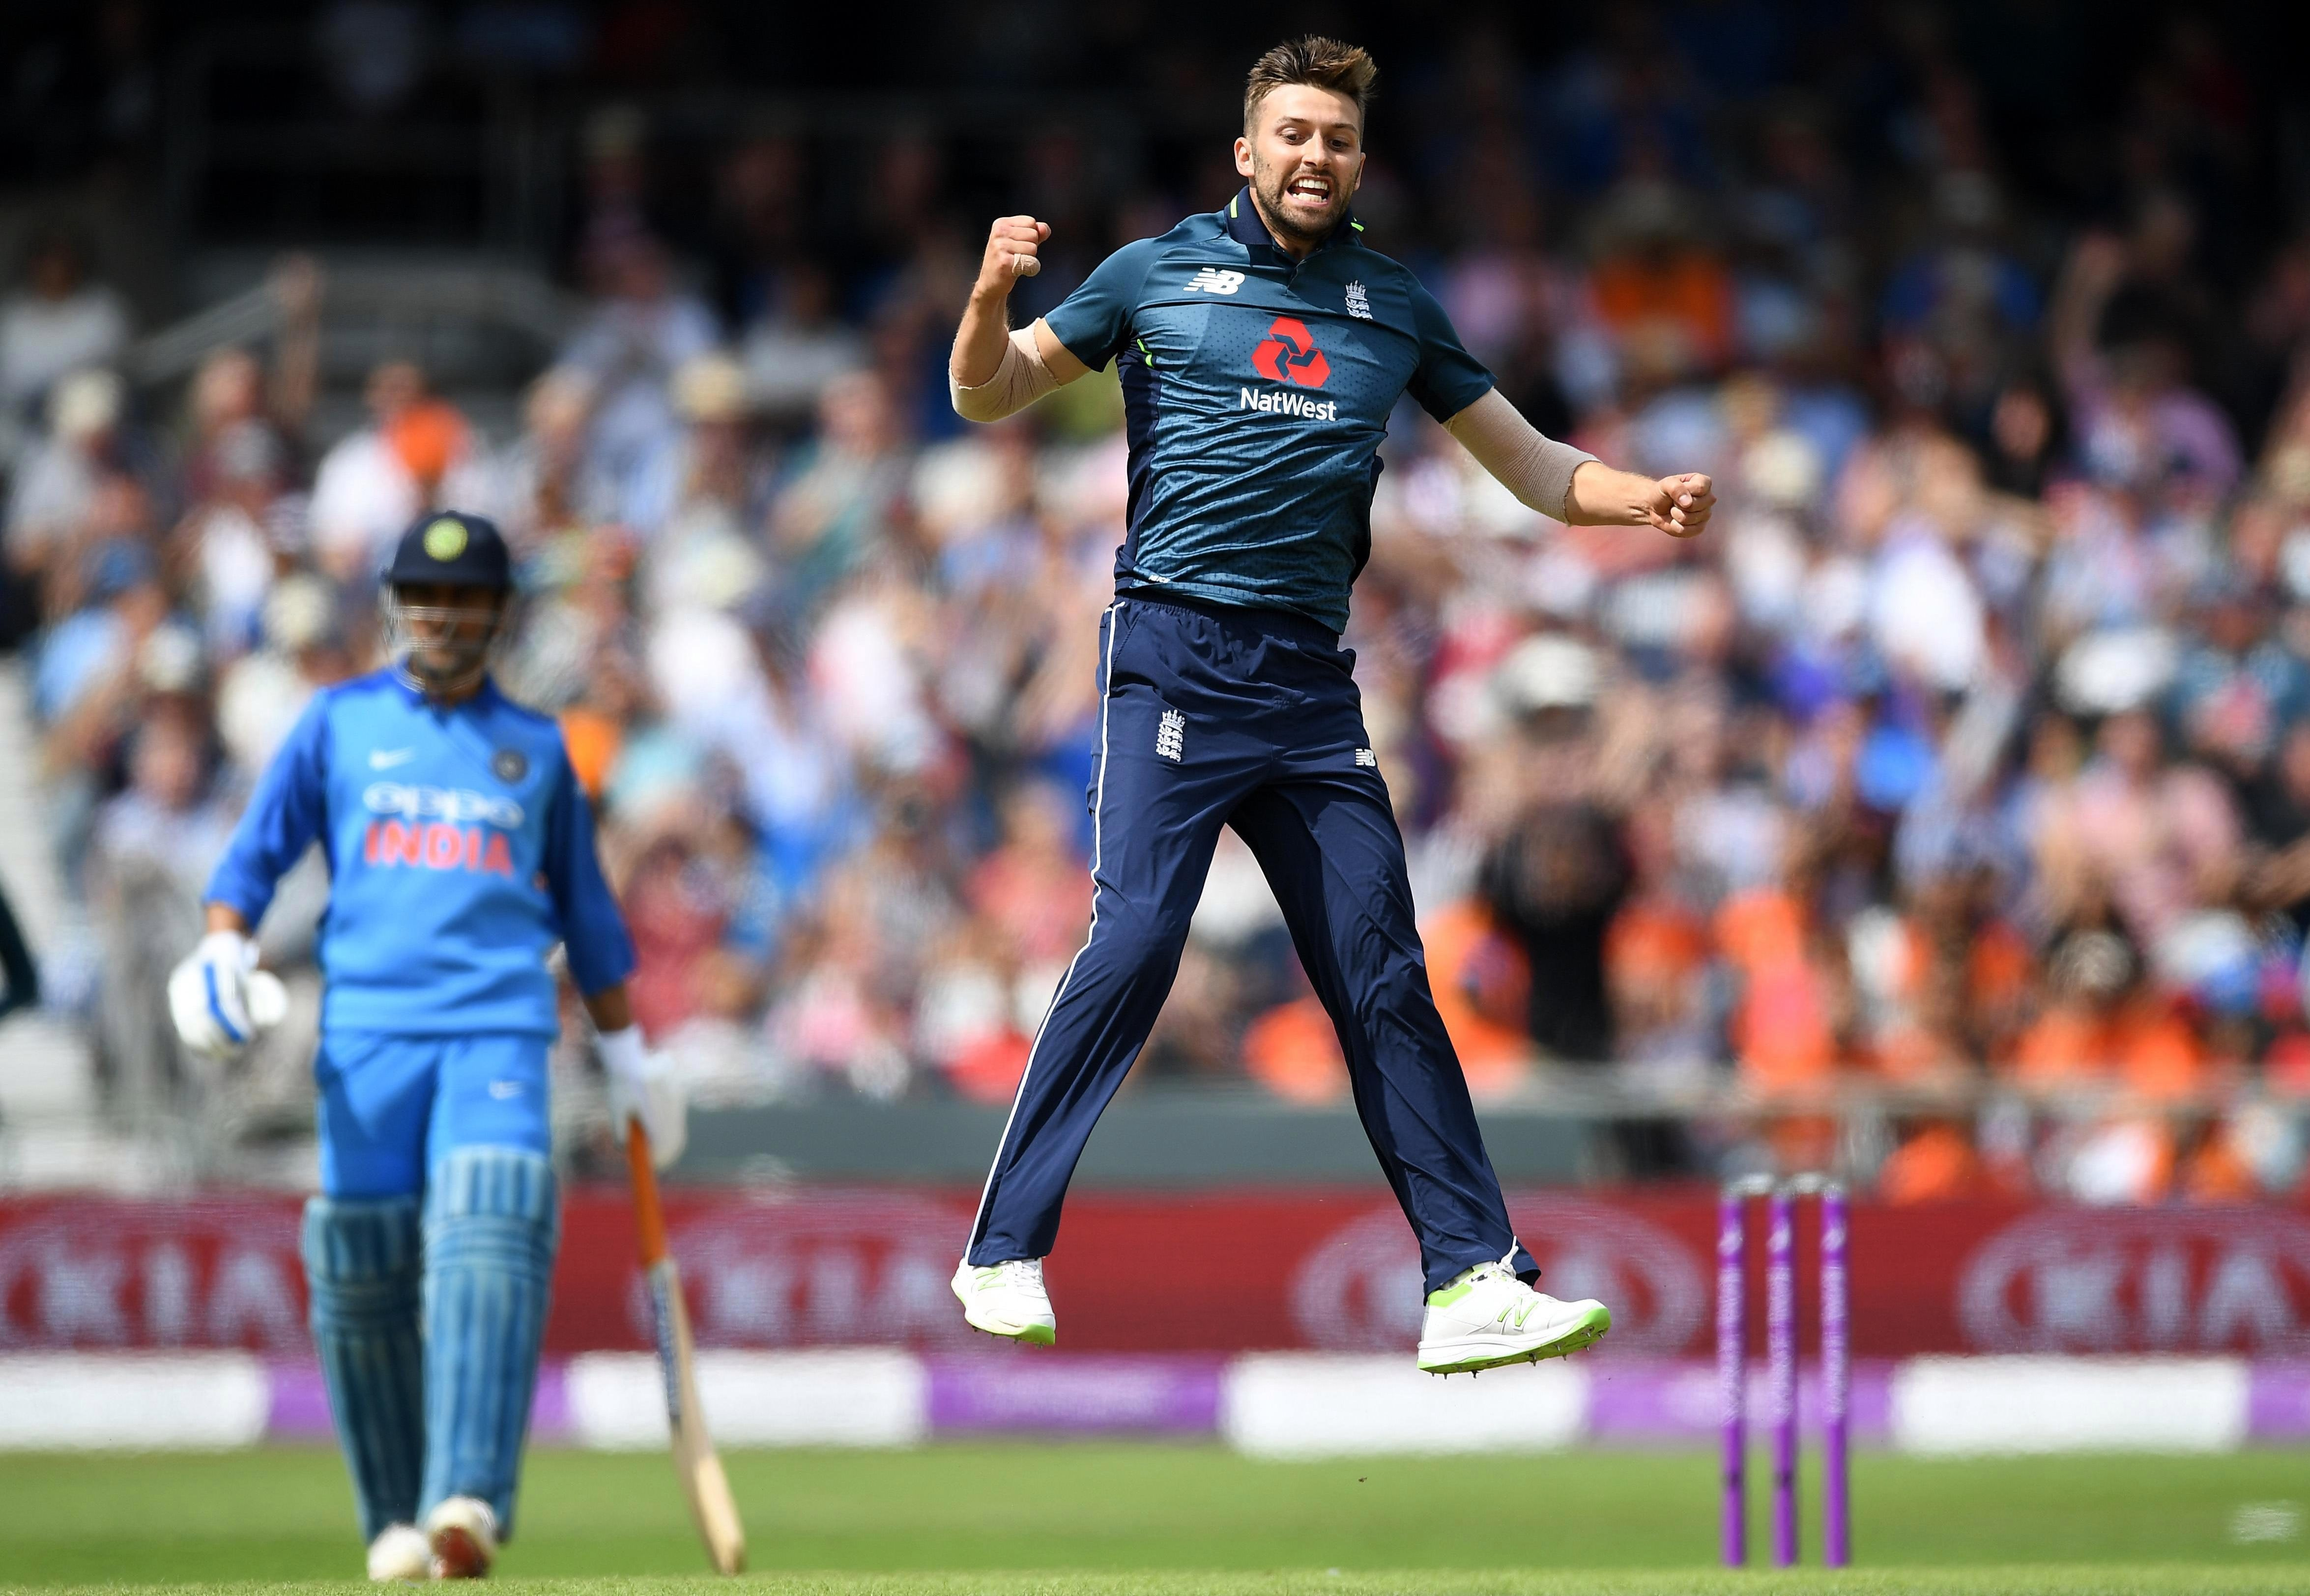 England fast bowler Mark Wood and Rashid both picked up three wickets